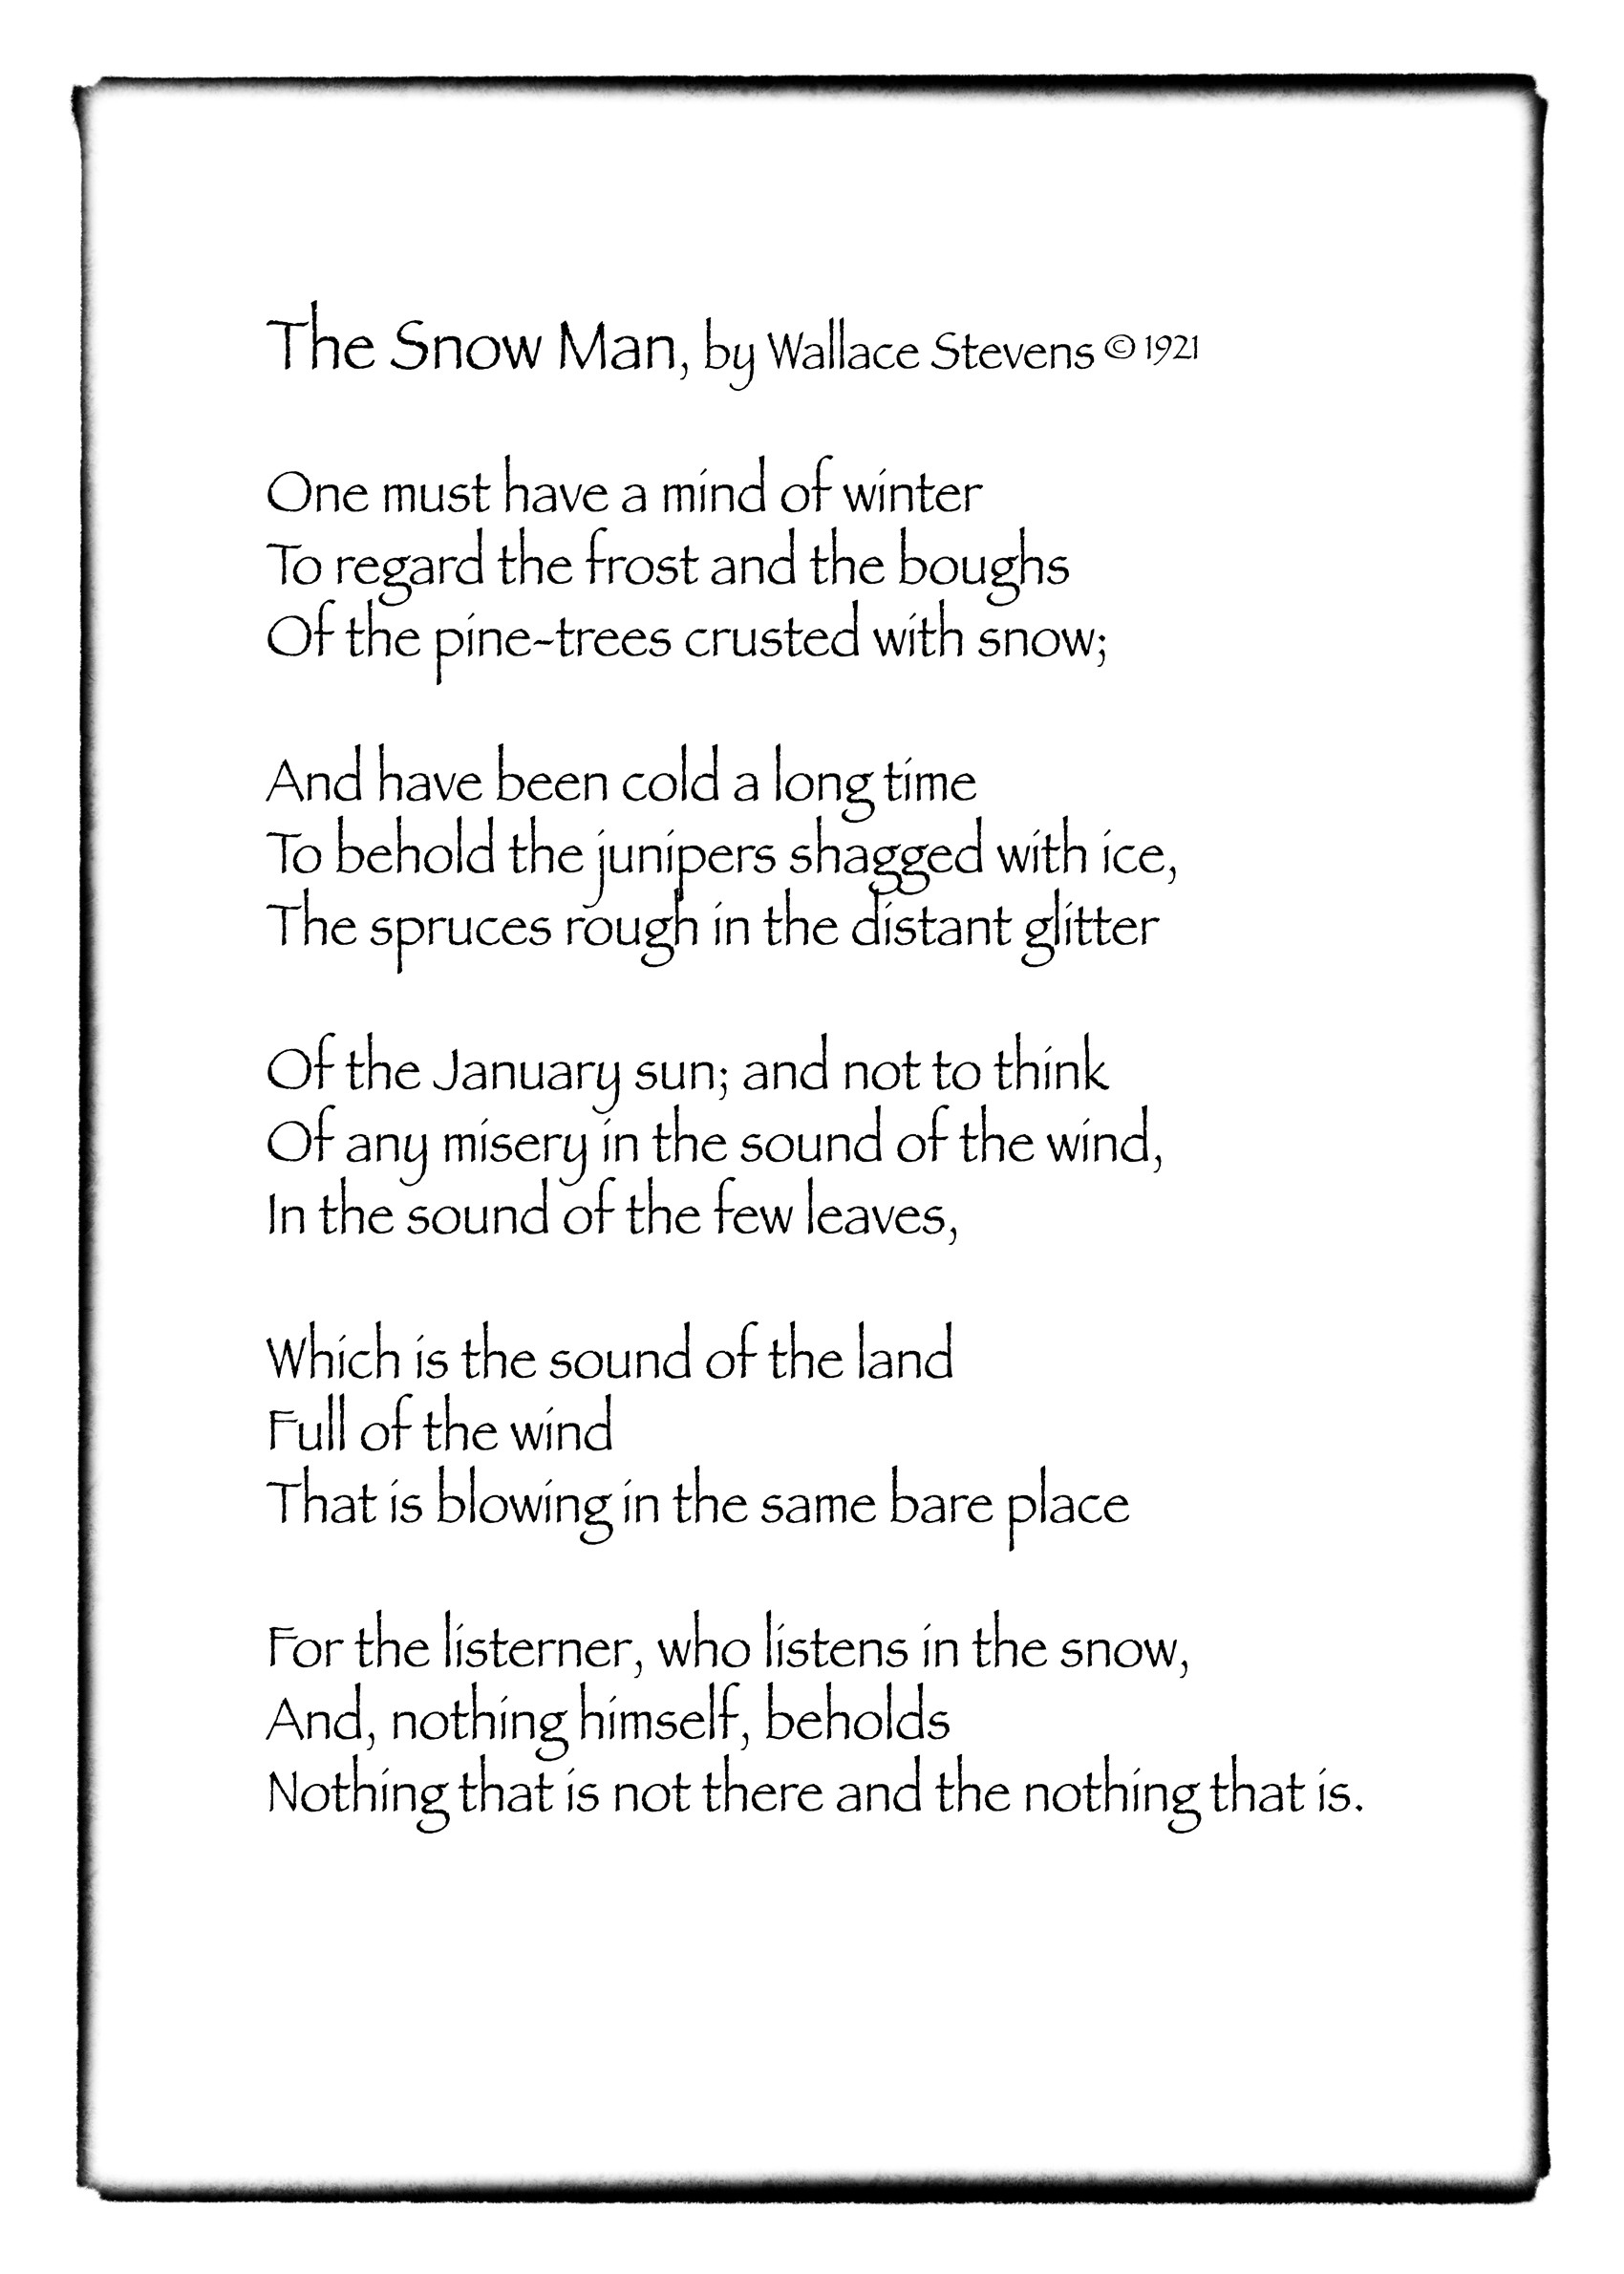 The Snow Man by Wallace Stevens ©1921